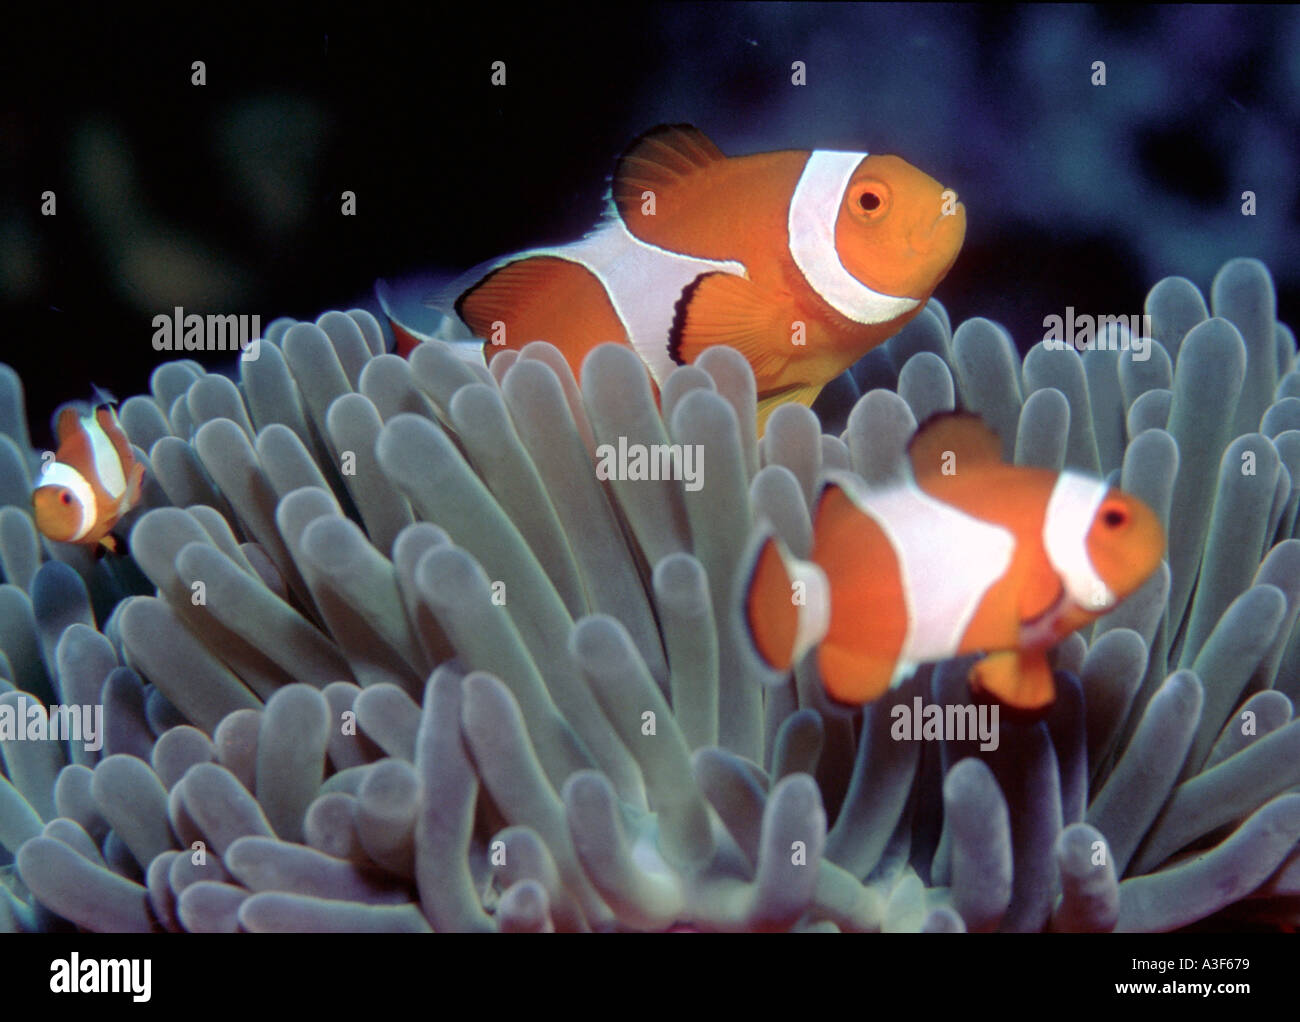 underwater, clownfishes in an anemone Stock Photo